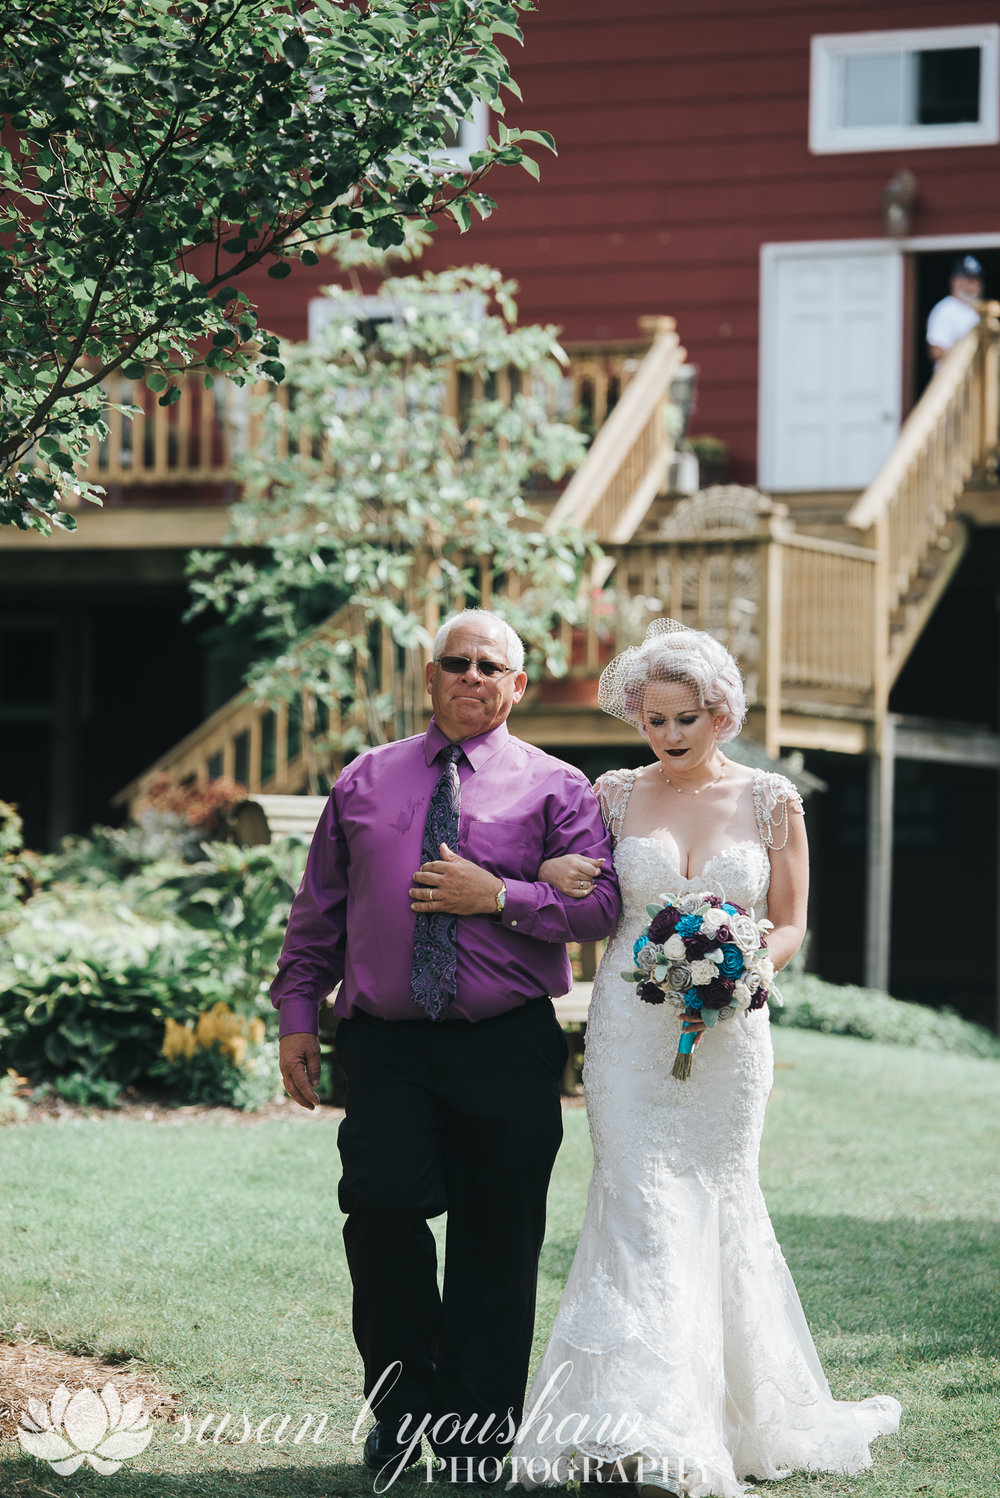 BLOG Kissy and Zane Diehl 07-14-2018 SLY Photography-111.jpg